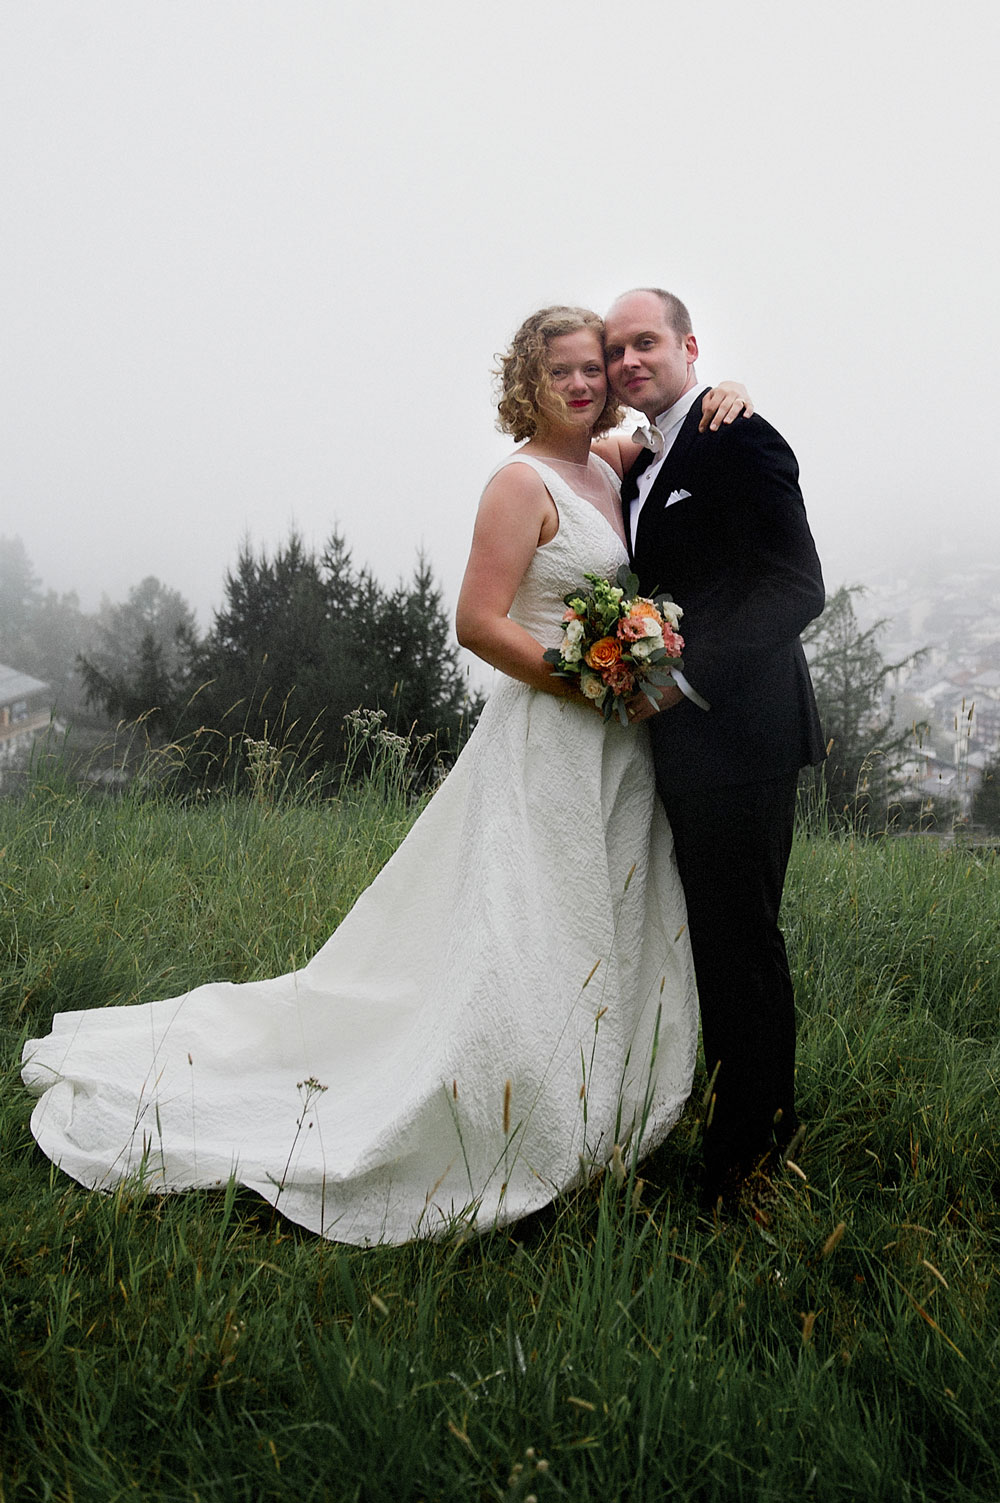 wedding_photographer_zermatt_39.jpg